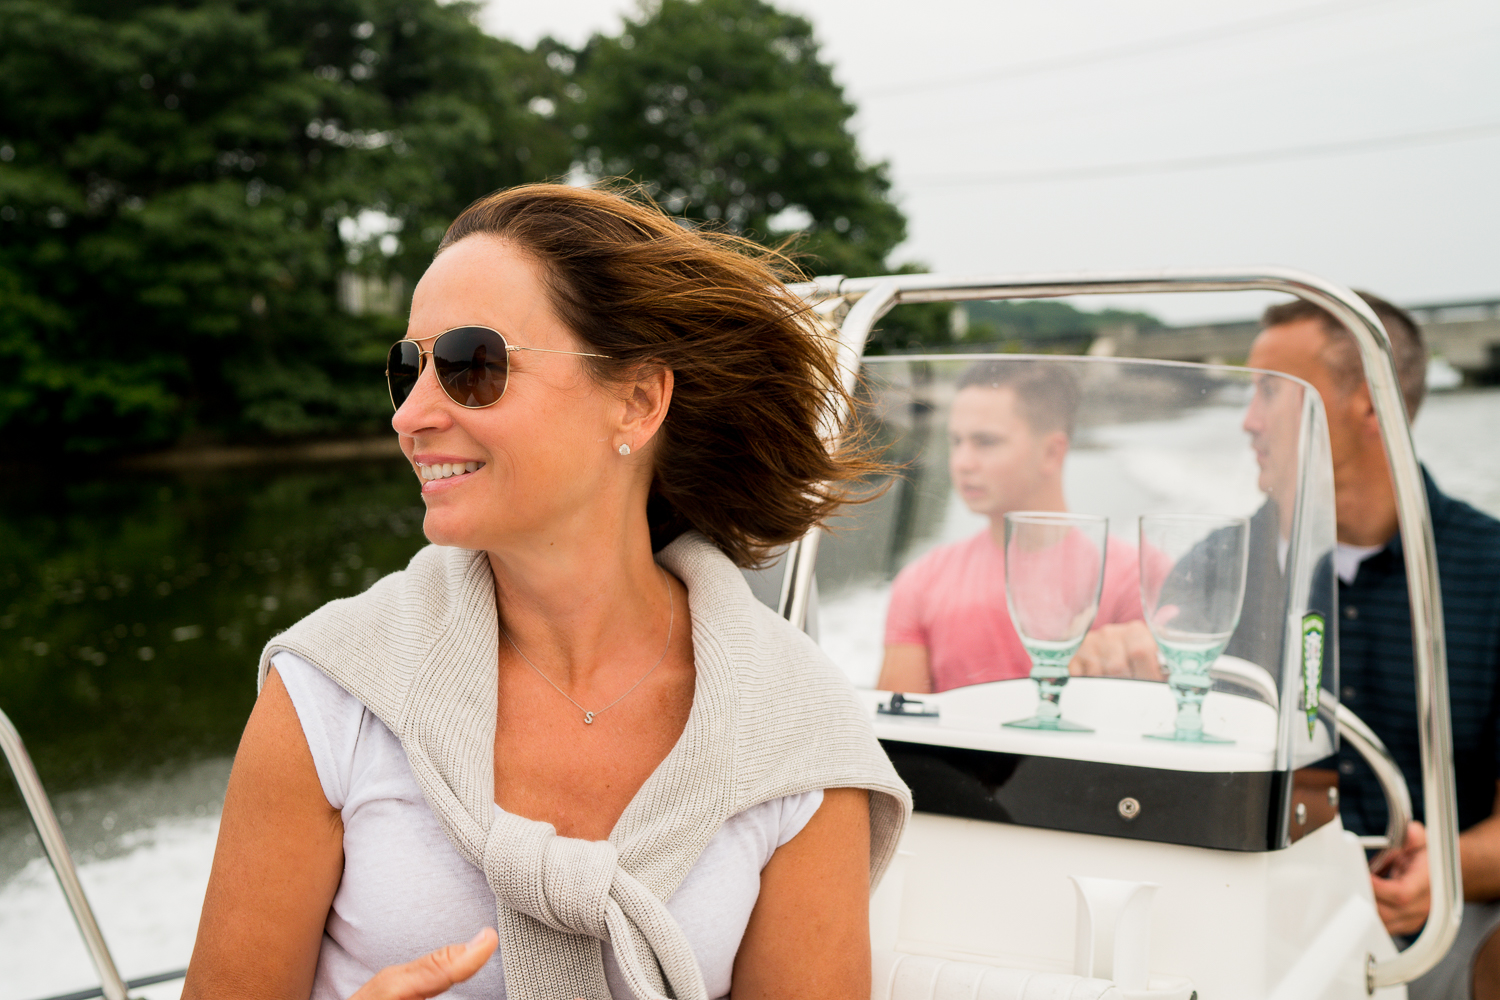 smiling woman on a boat with husband and son sitting behind her driving